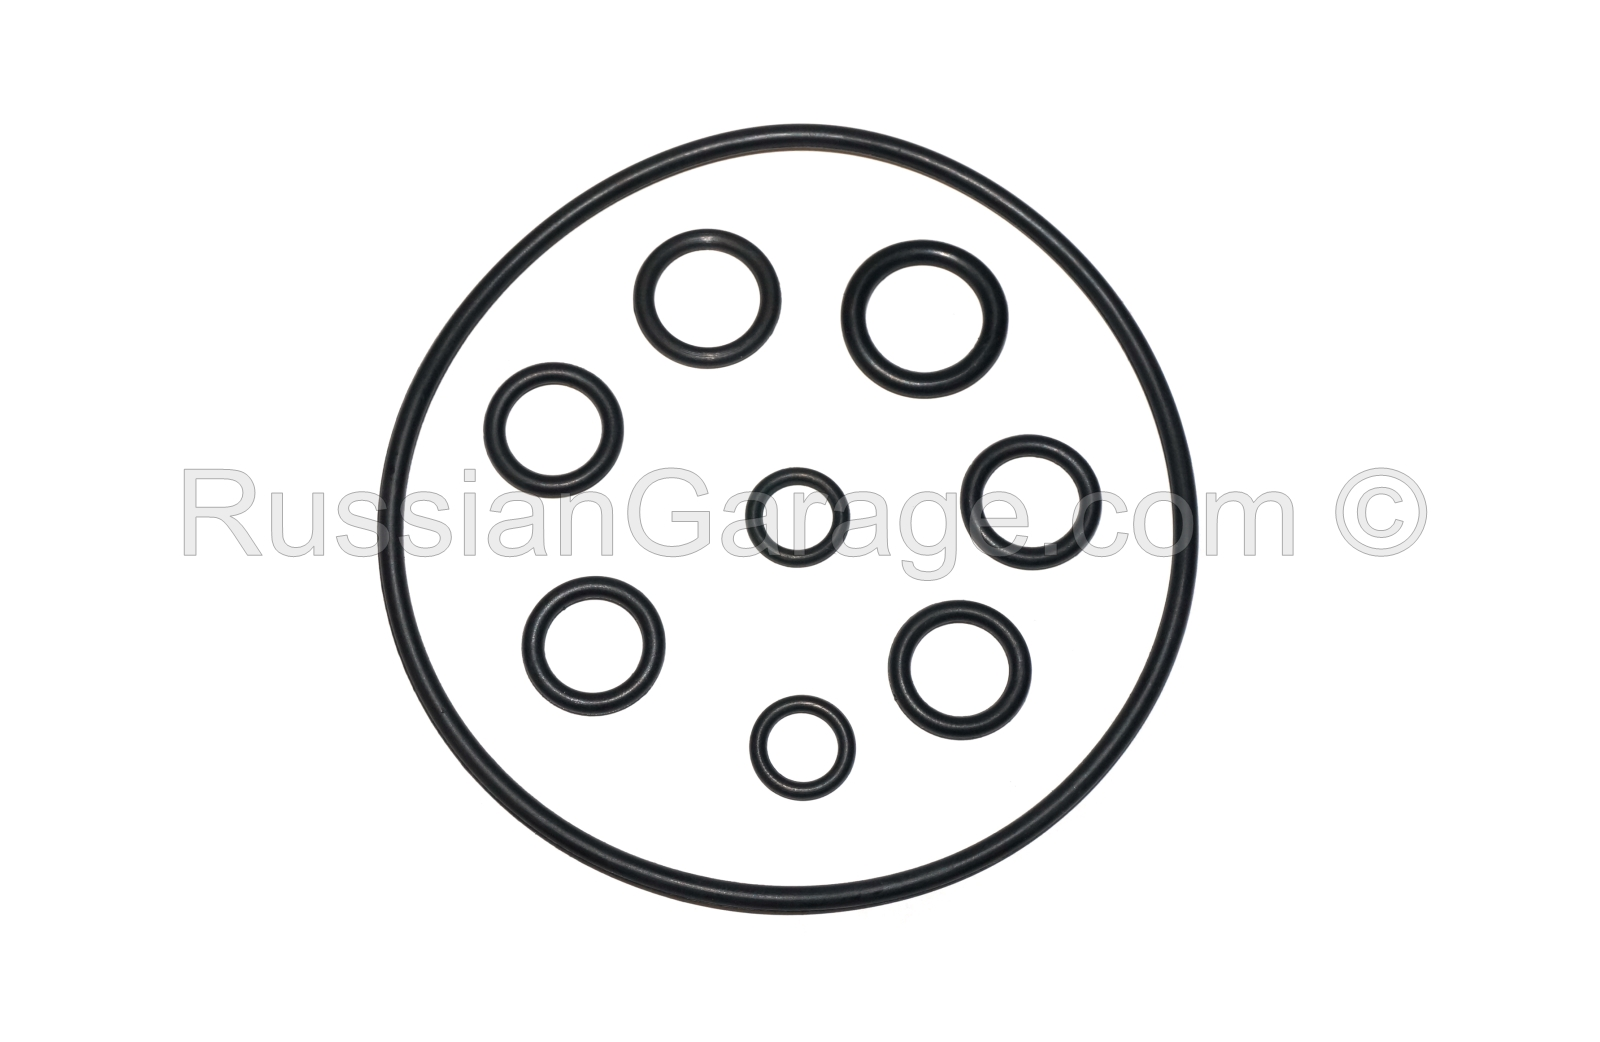 Set of rubber repair gaskets and seals DNEPR MT motorcycle